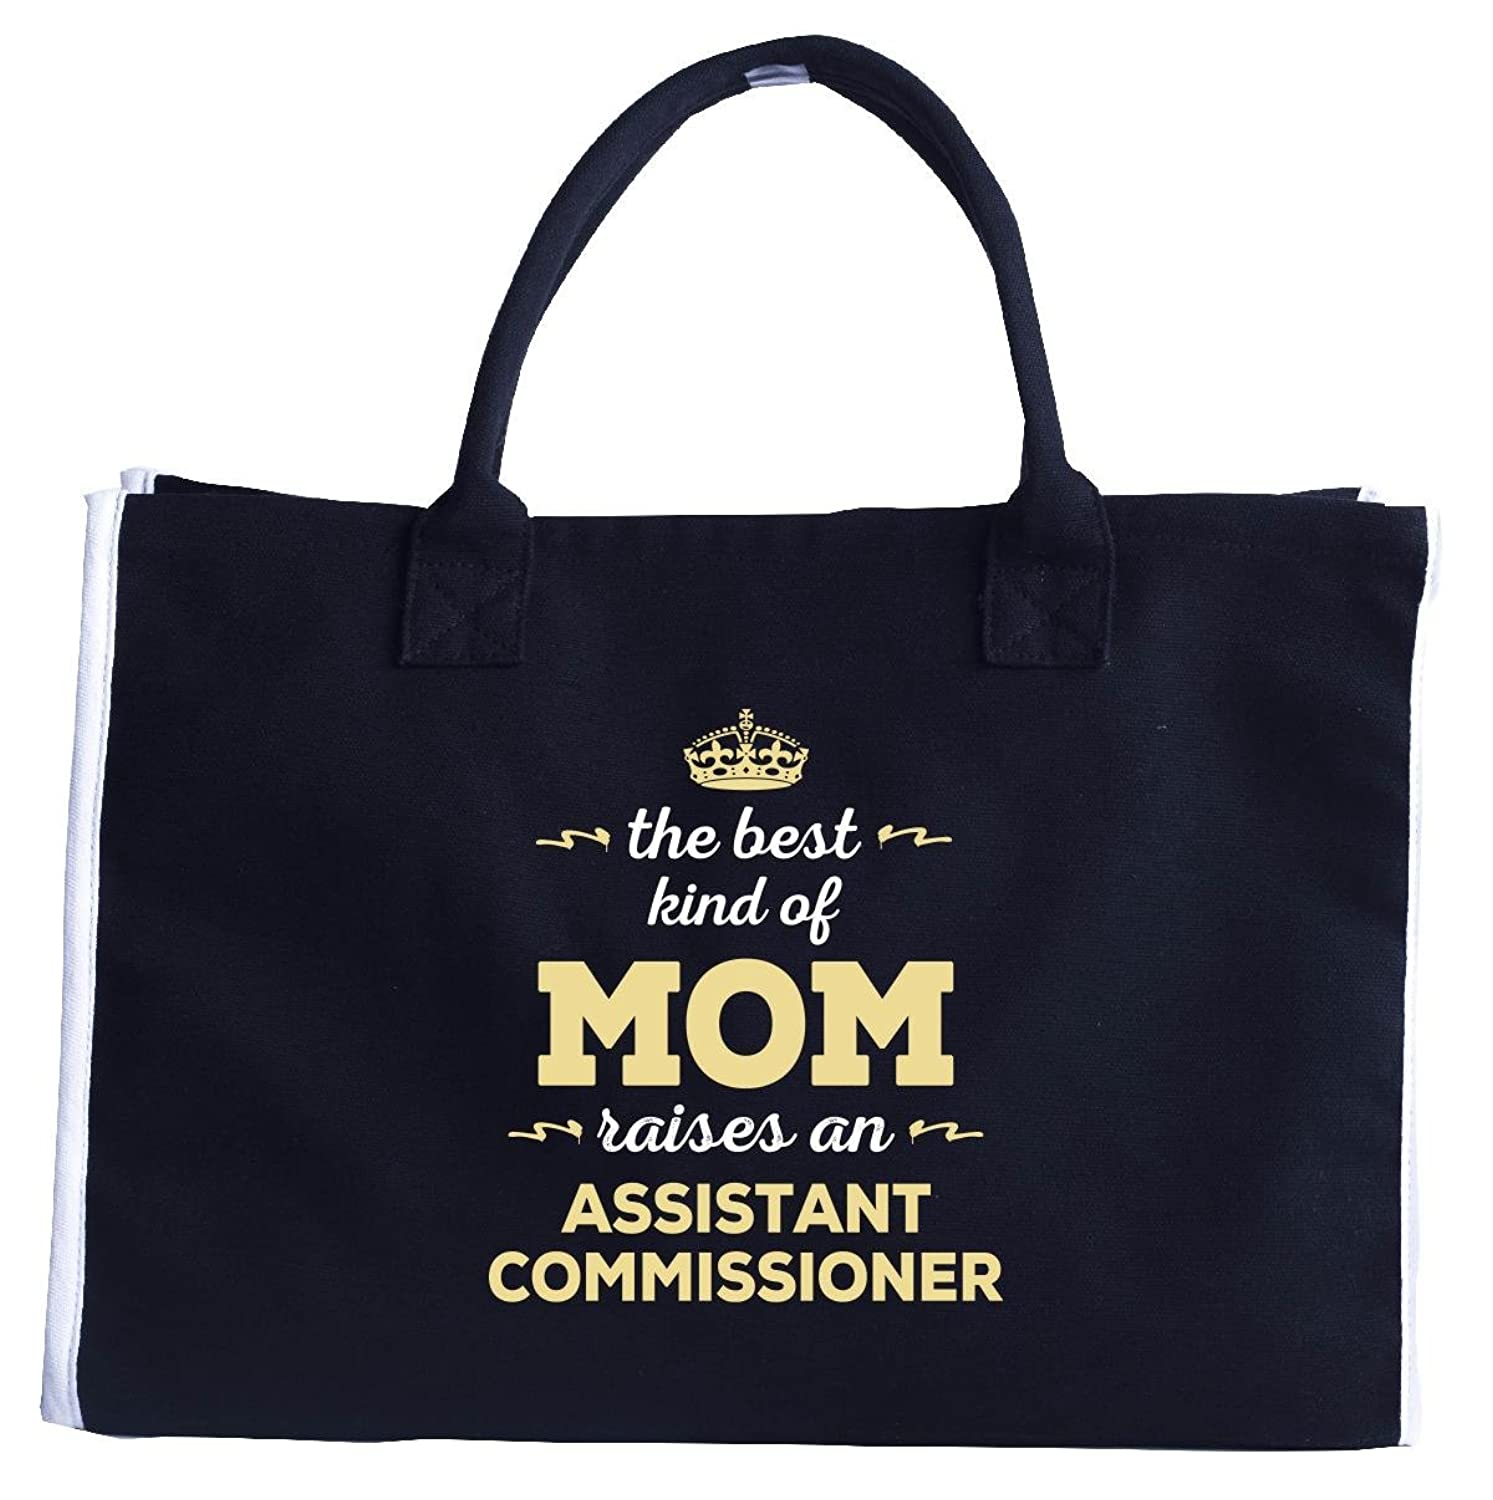 The Best Kind Of Mom Raises An Assistant Commissioner - Fashion Tote Bag